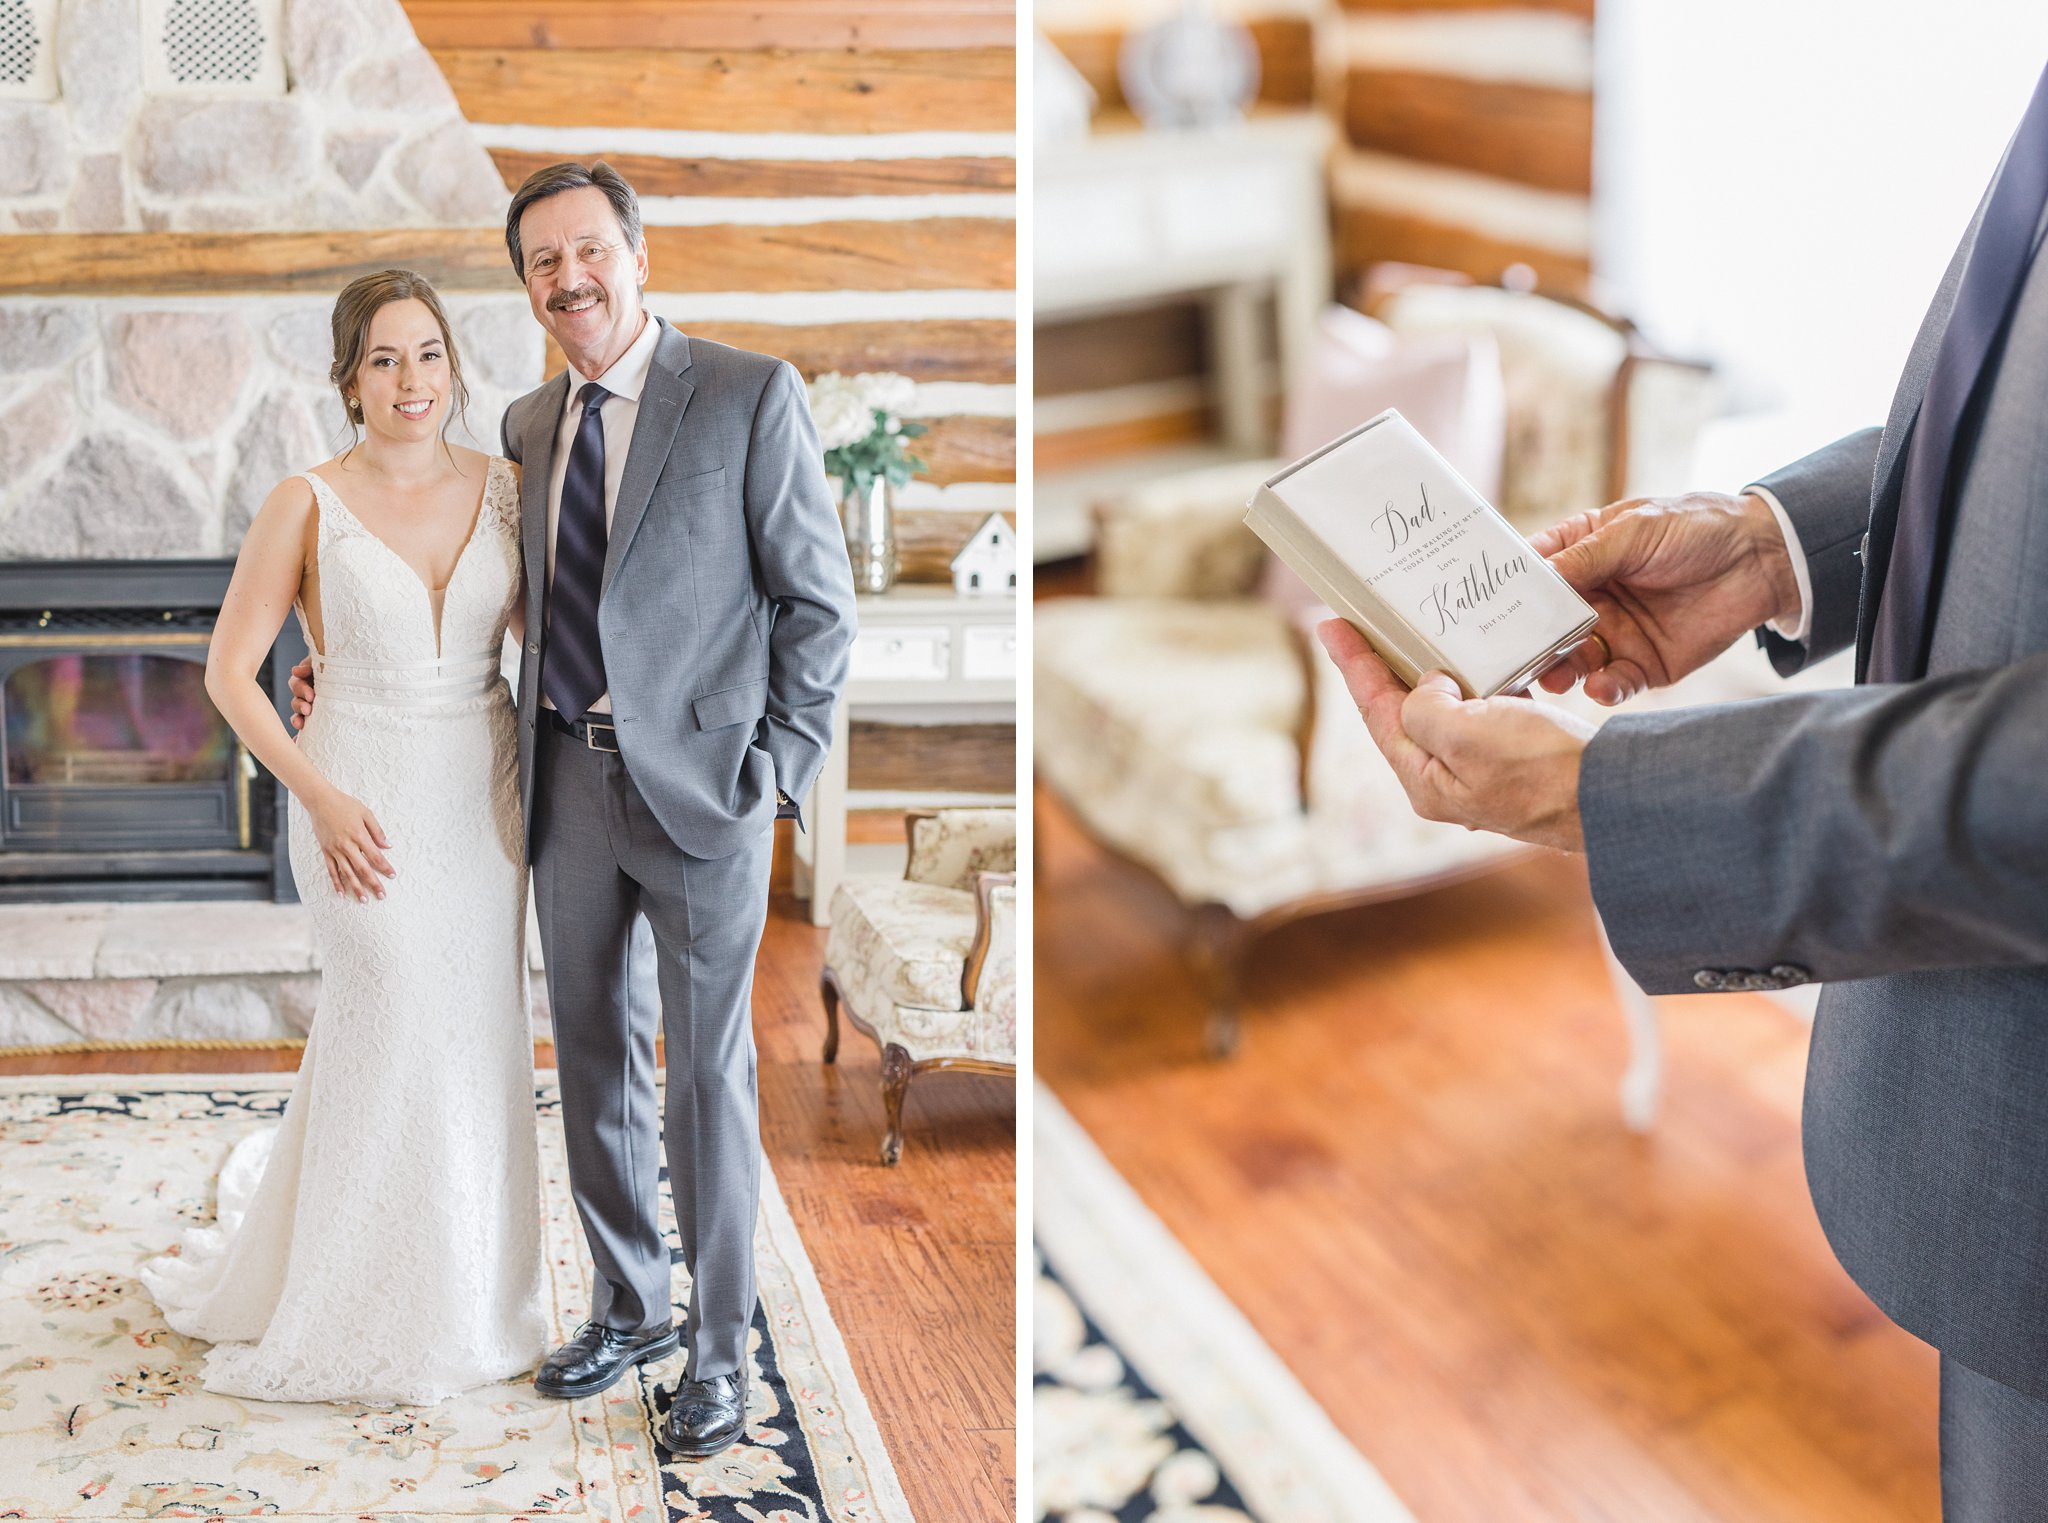 Bride with her father married at Stonefields, Amy Pinder Photography